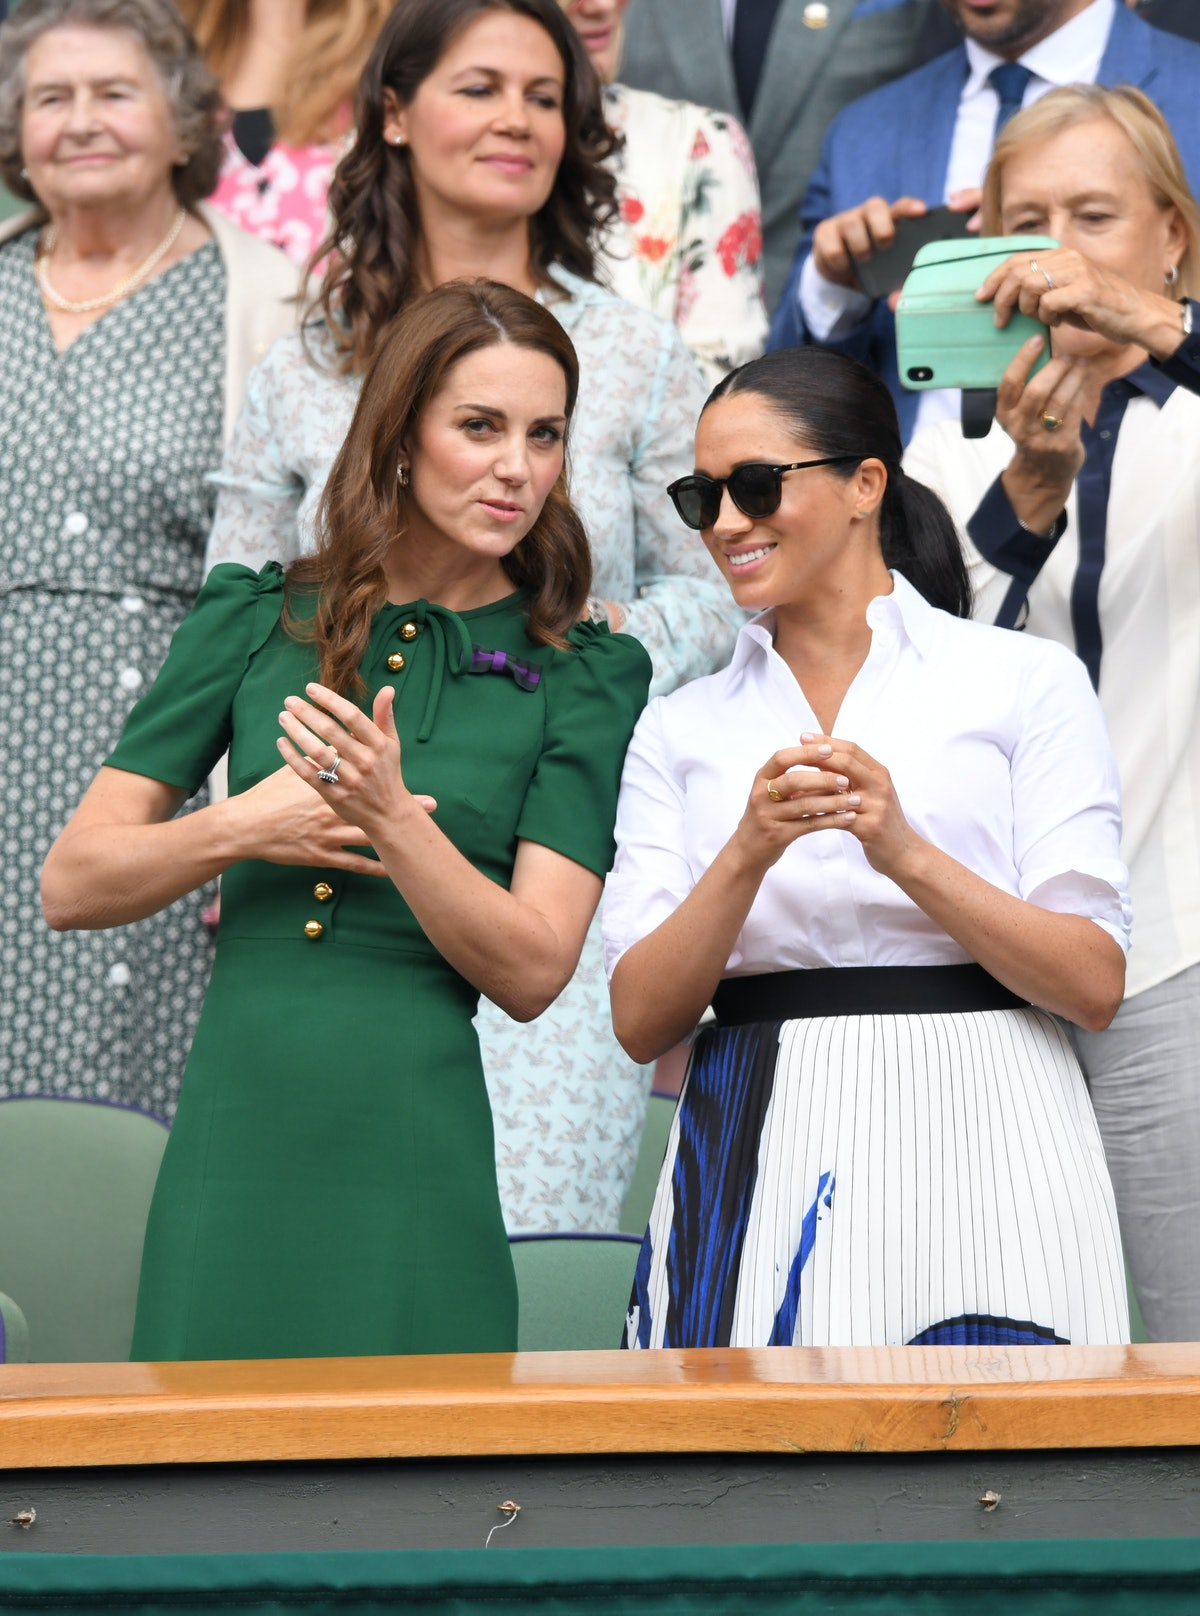 Catherine, Duchess of Cambridge and Meghan, Duchess of Sussex in the Royal Box on Centre Court durin...